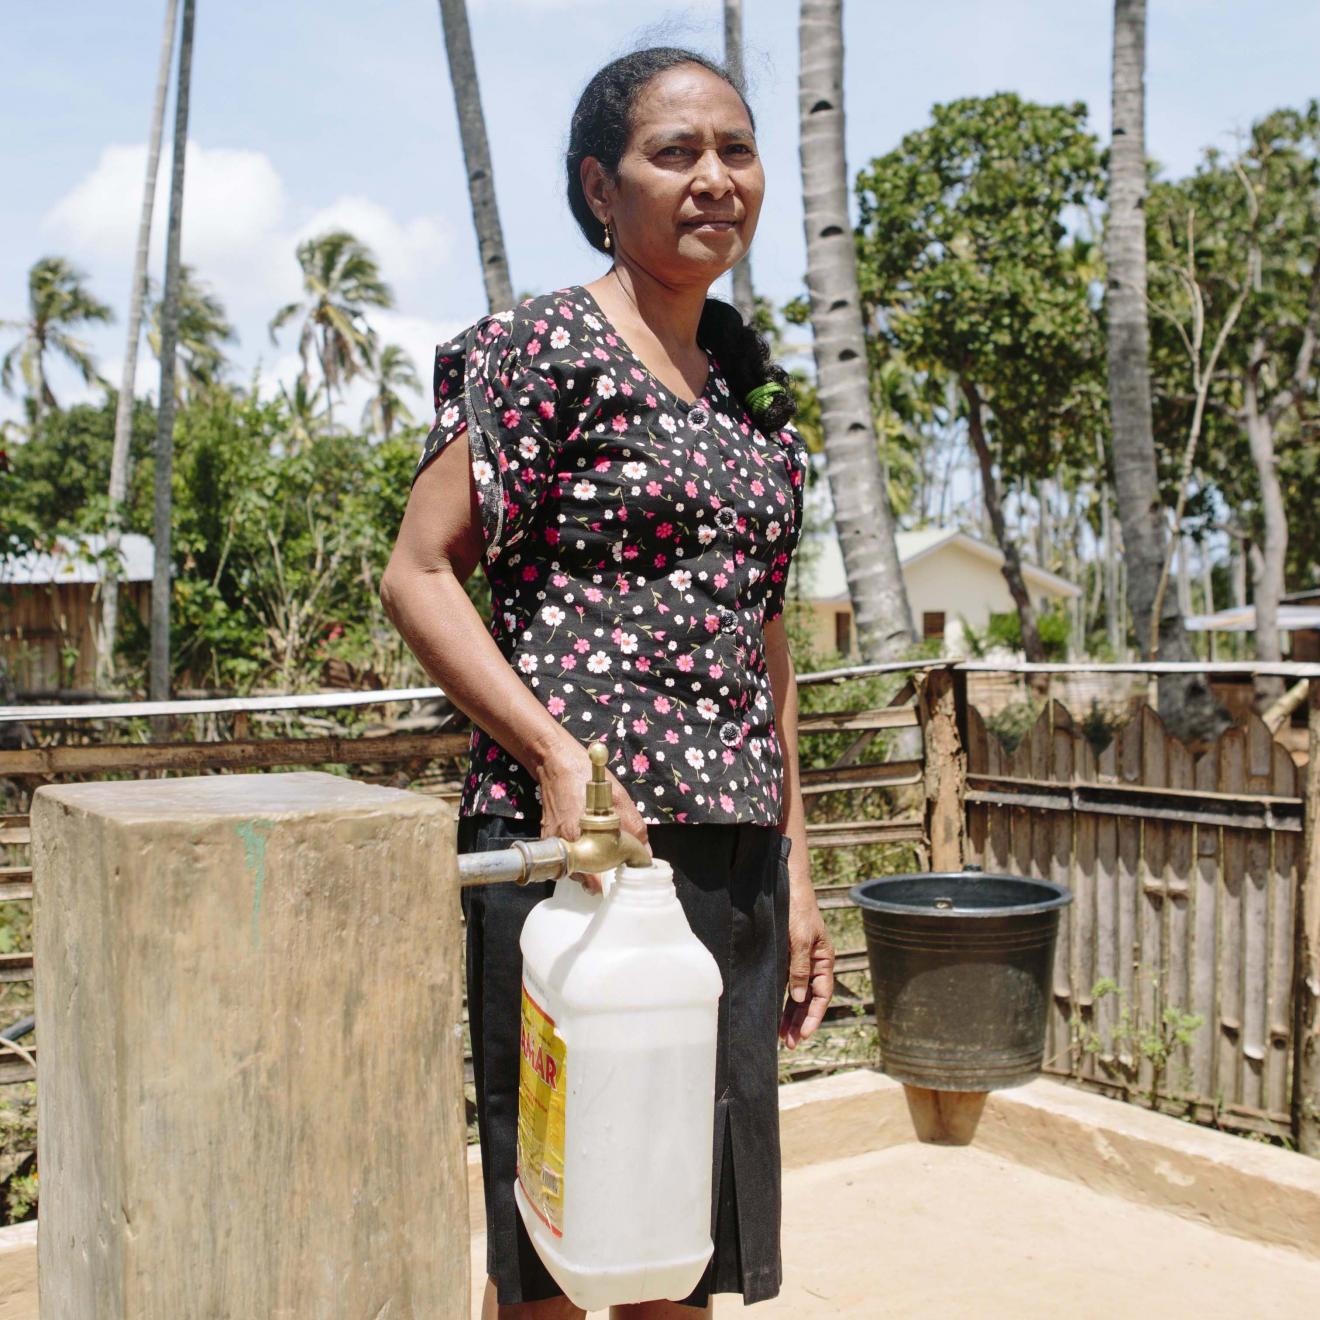 Community member Etelvina holding a water jug at one of the new water points built by WaterAid and partners in Timor-Leste.